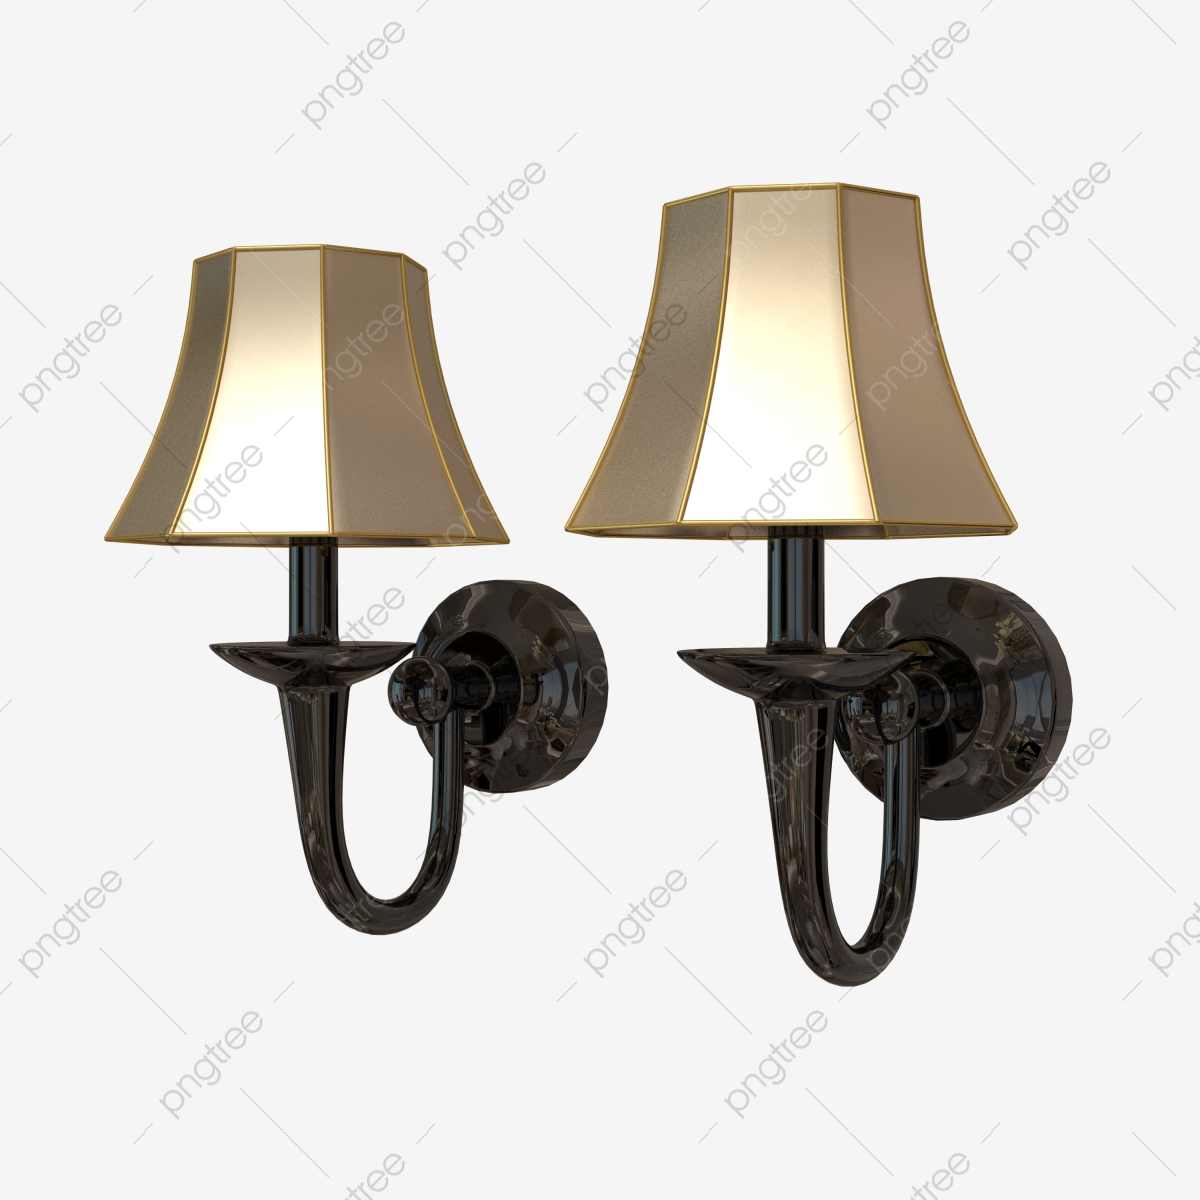 A Set Of Wall Hanging Lamps Wall Lamp Lamp Lighting Png Transparent Clipart Image And Psd File For Free Download